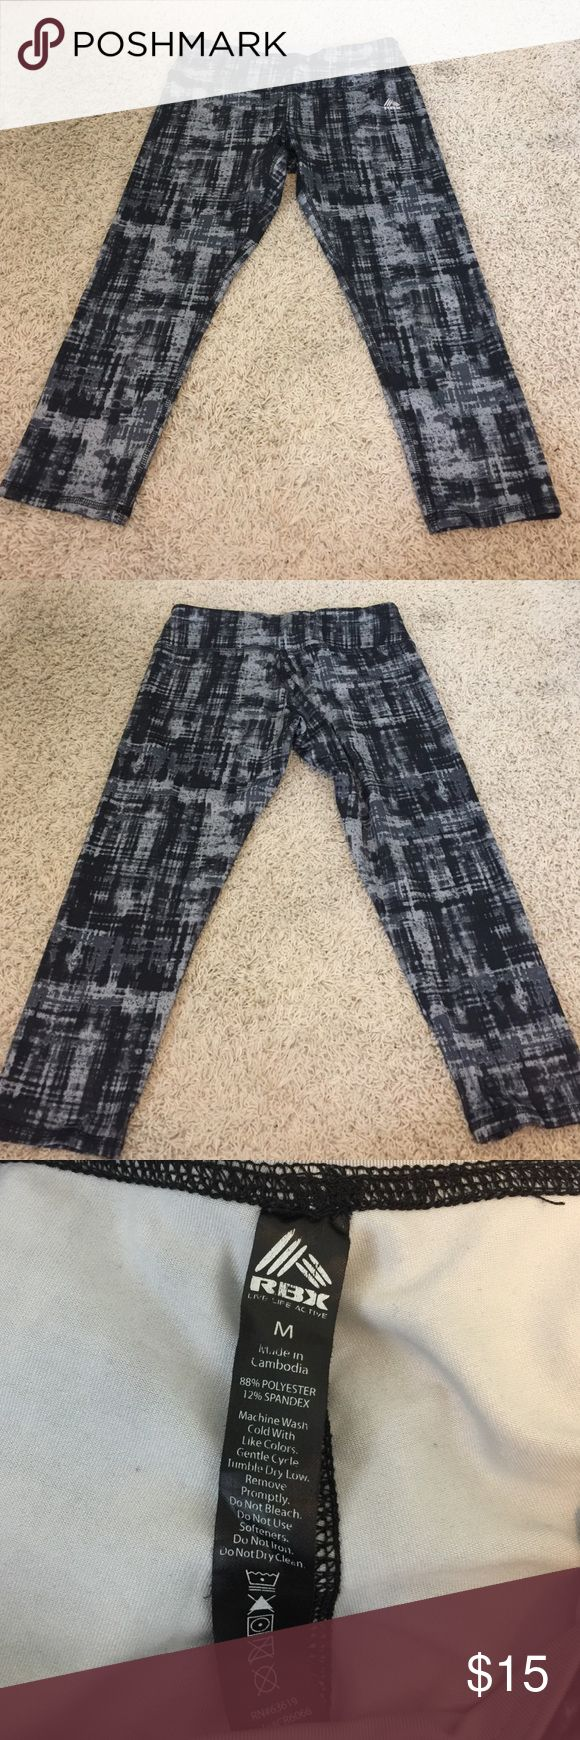 Women's athletic capris RBX Black and gray athletic pants, length comes to about mid calf Pants Capris